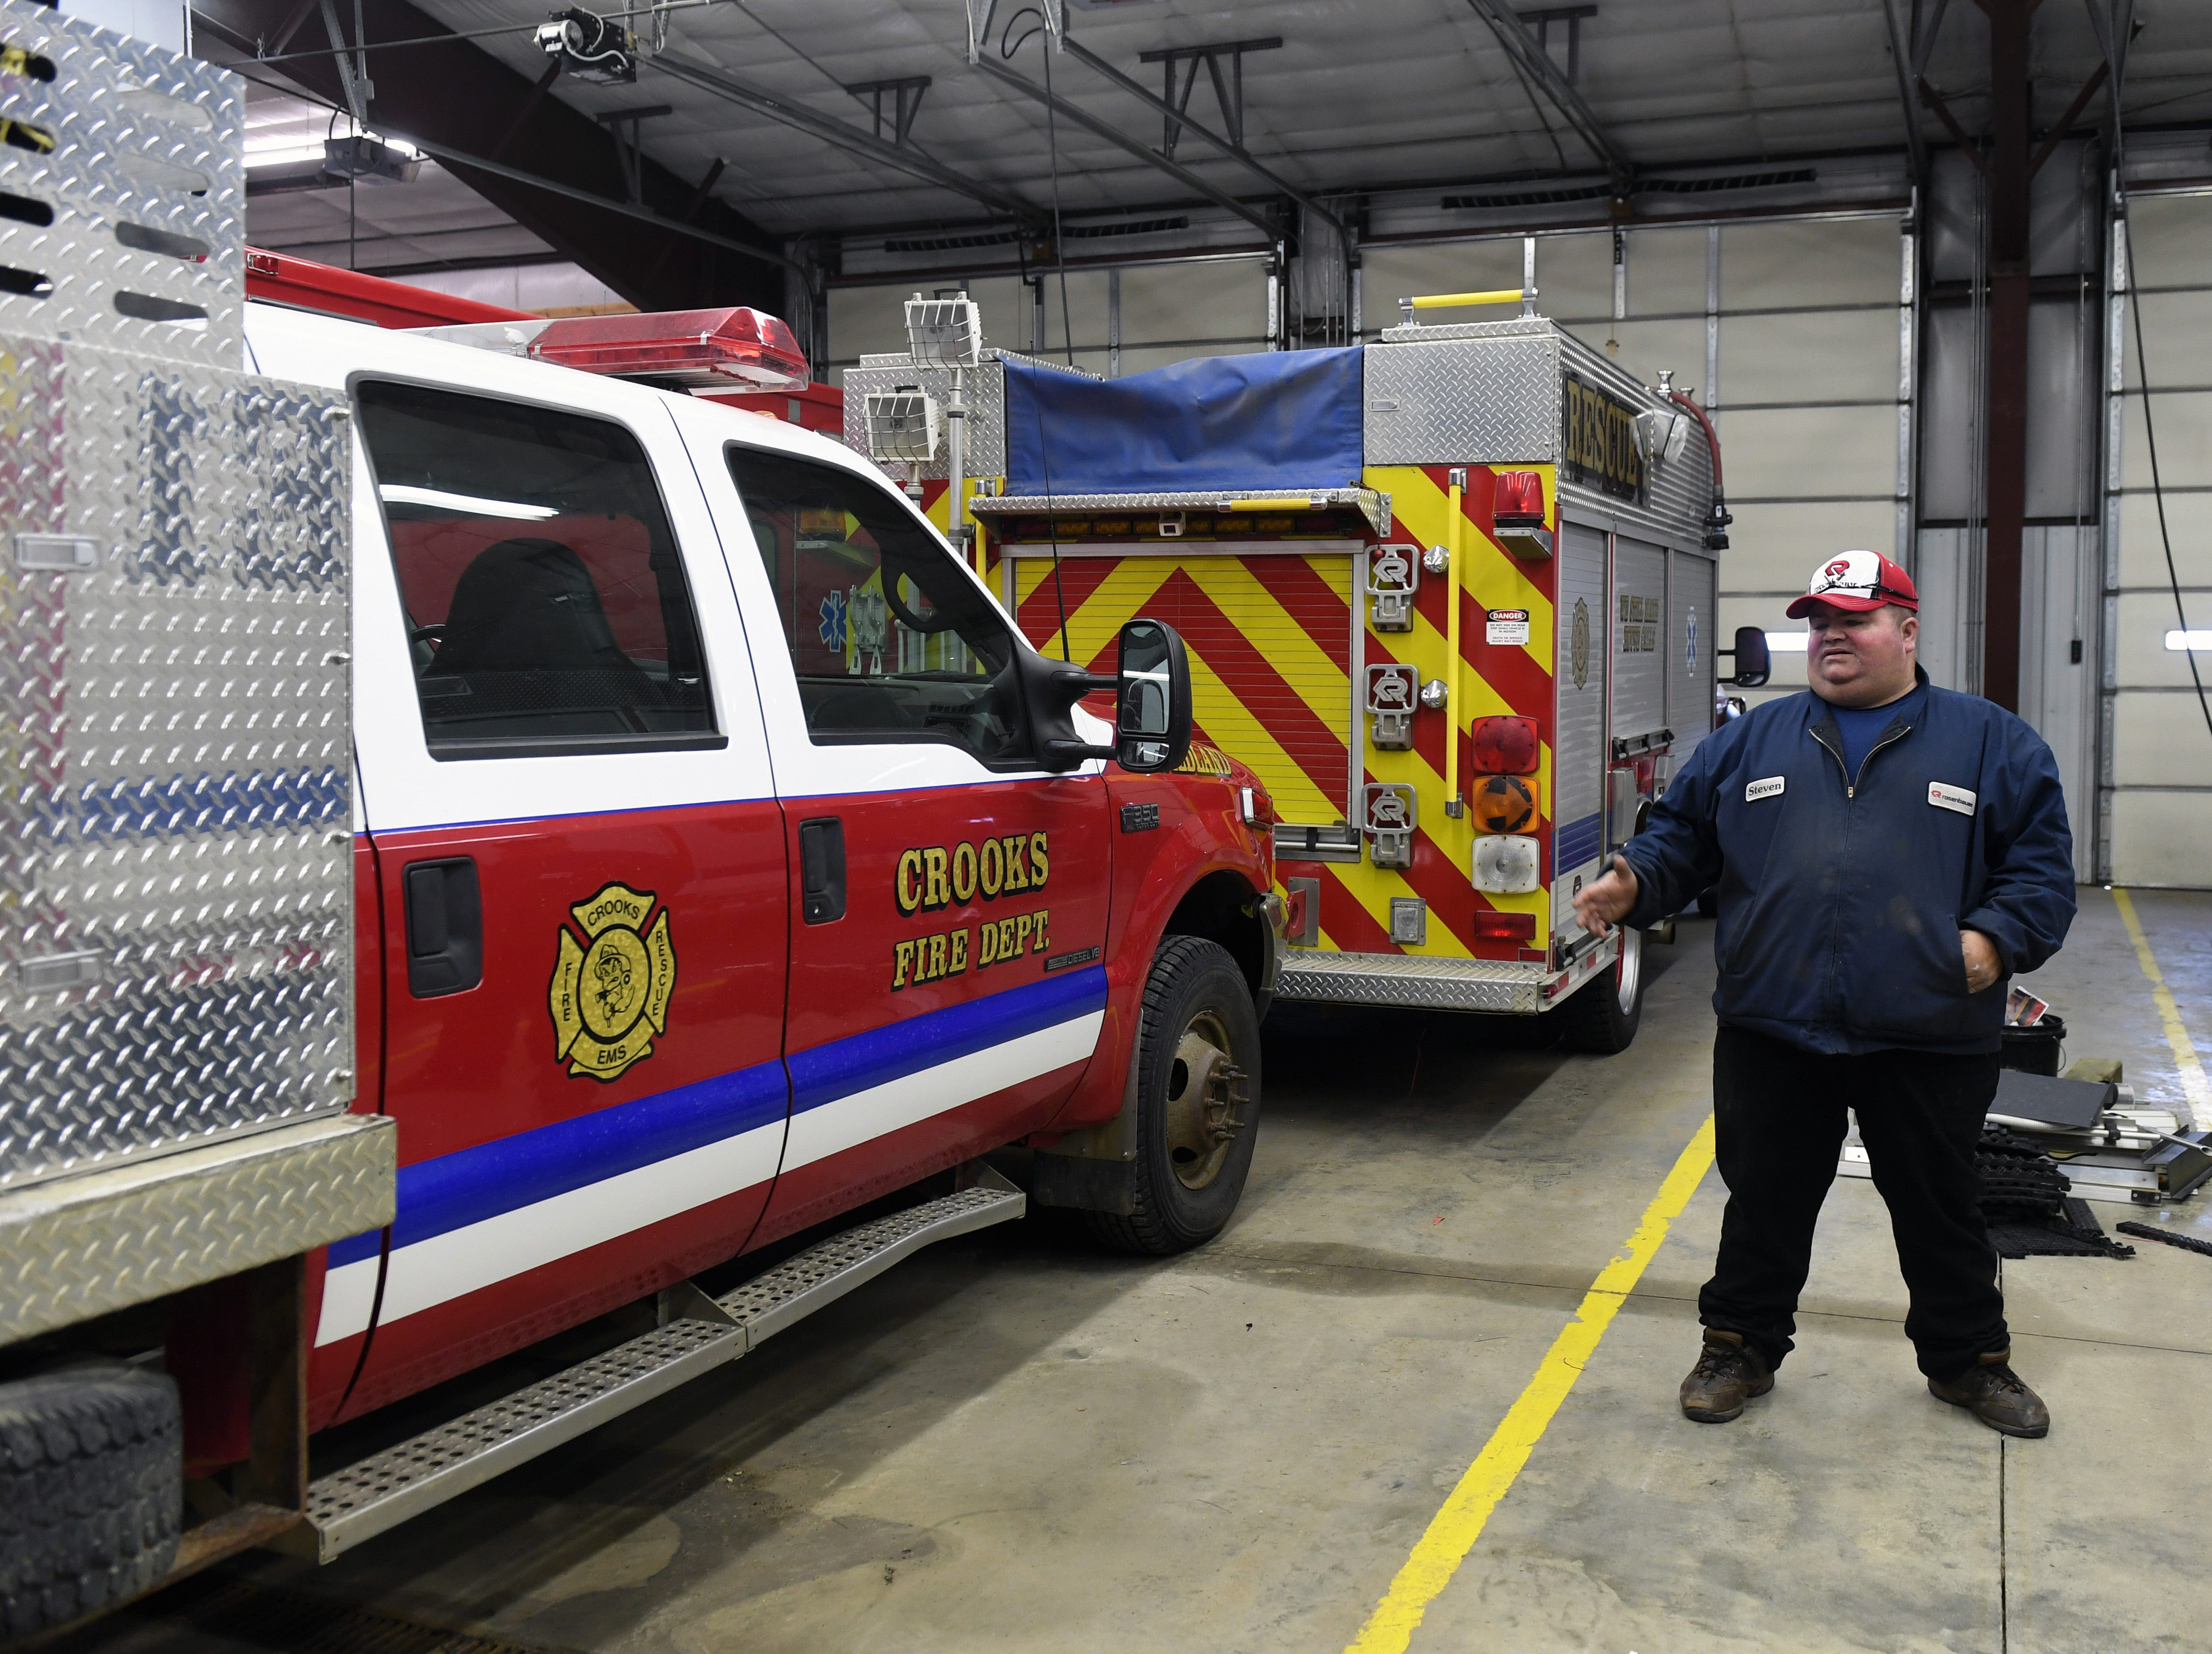 Volunteer firefighter Steve Boer describes the equipment available to the Crooks Fire Department on Tuesday, May 7. Even though their equipment is in good condition, roads can often be damaged too much for even their largest trucks to get through.